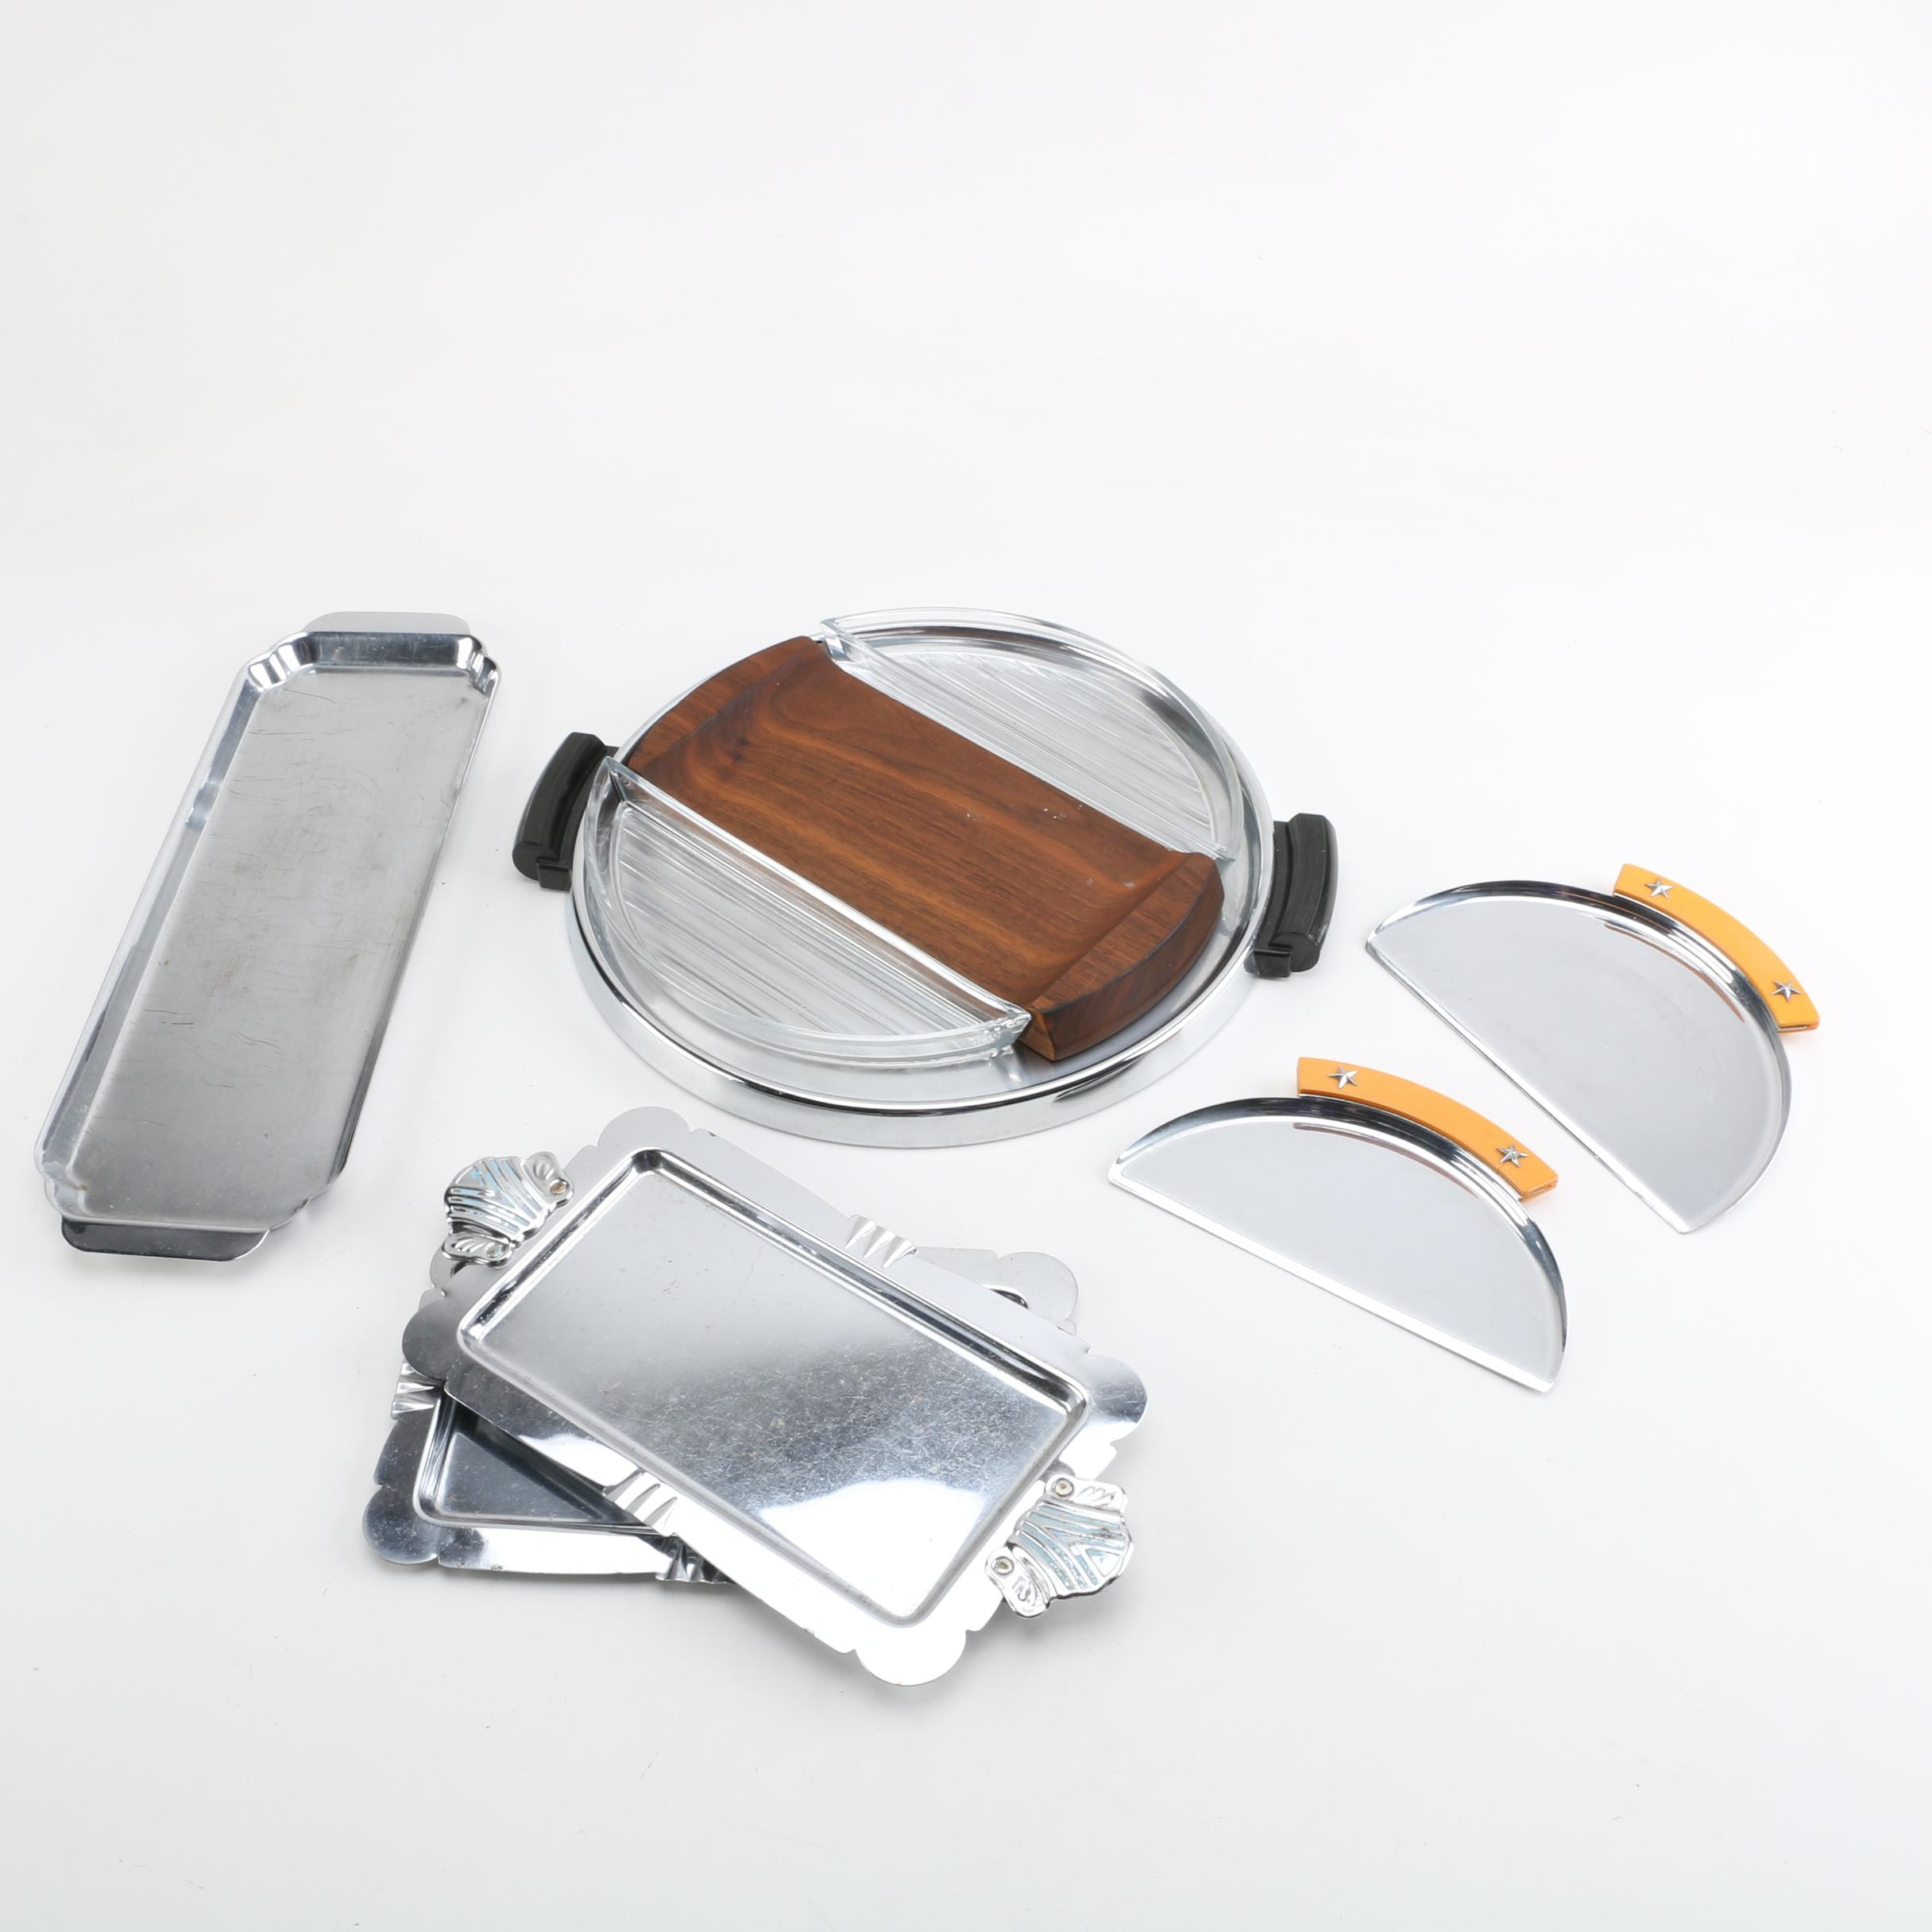 Group of Art Deco Chromed Metal Serveware and More